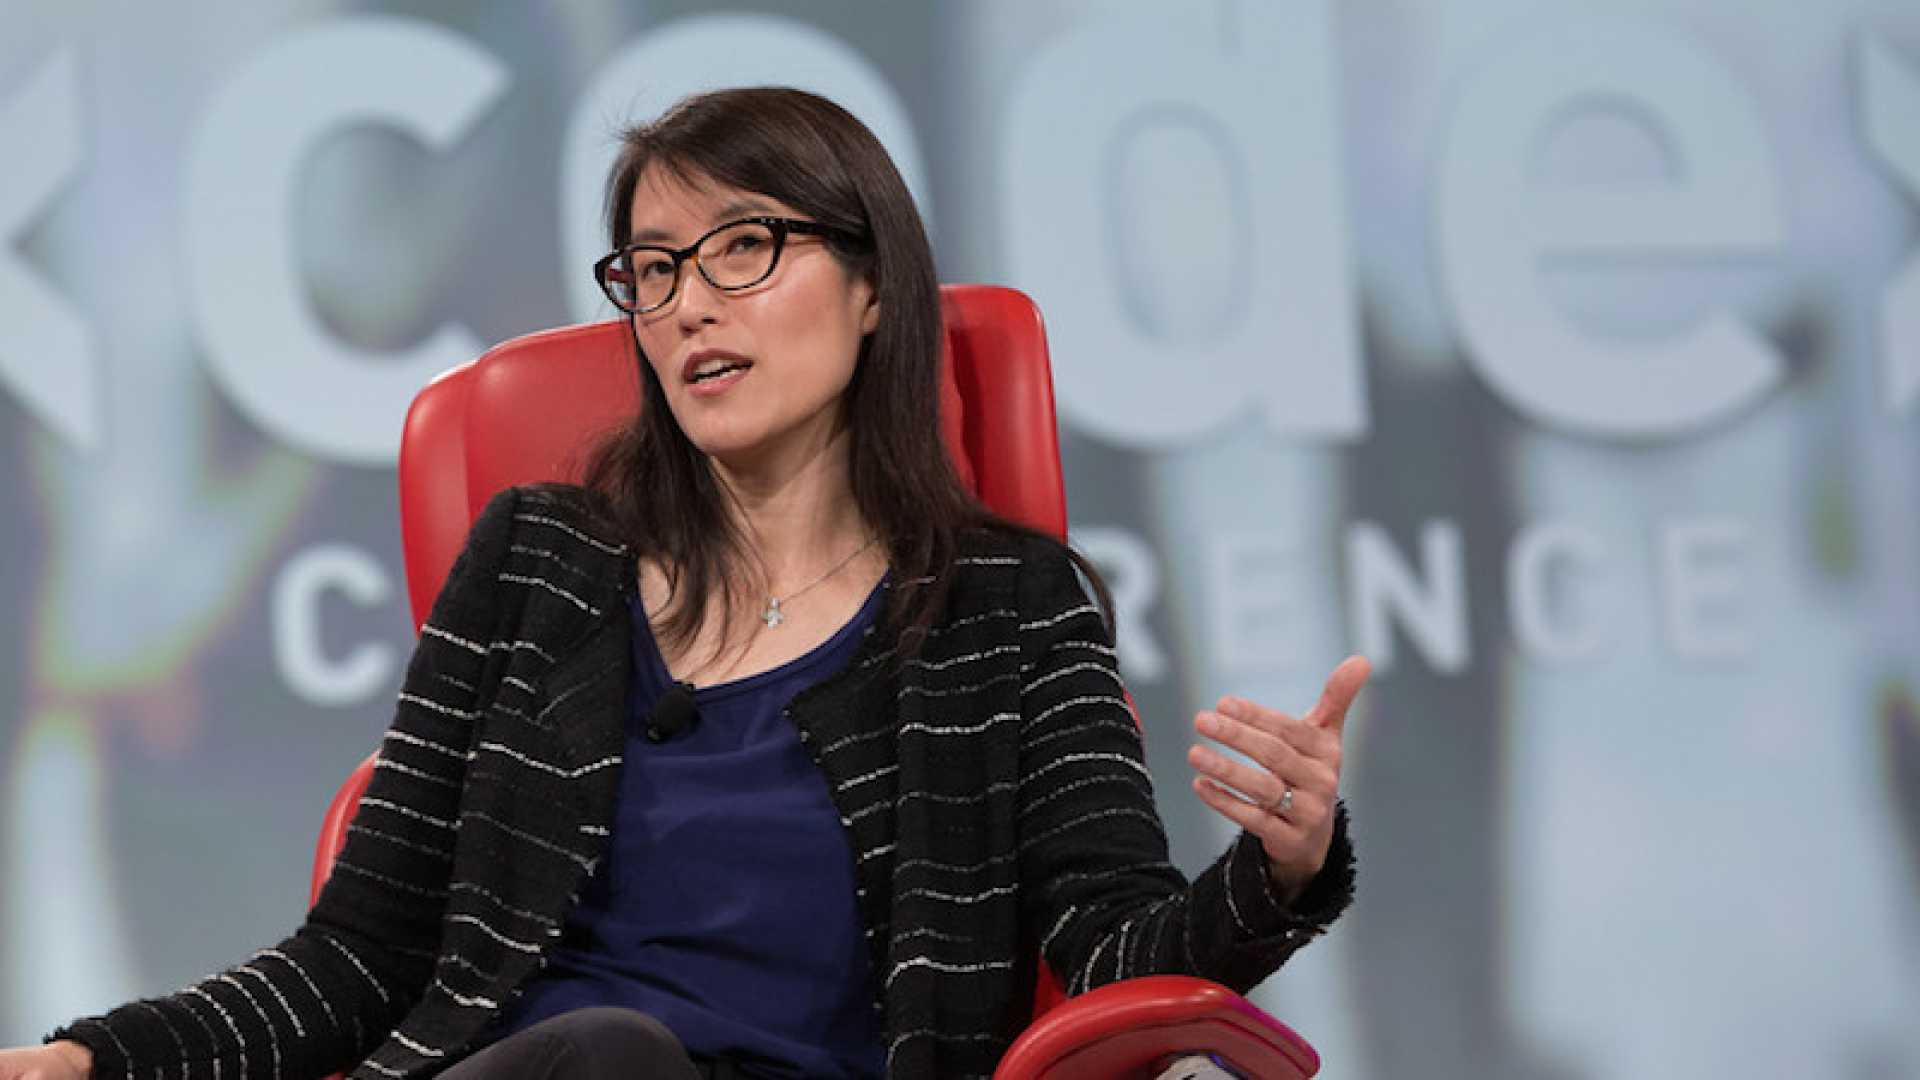 That Was Fast: CEO Ellen Pao Out at Reddit